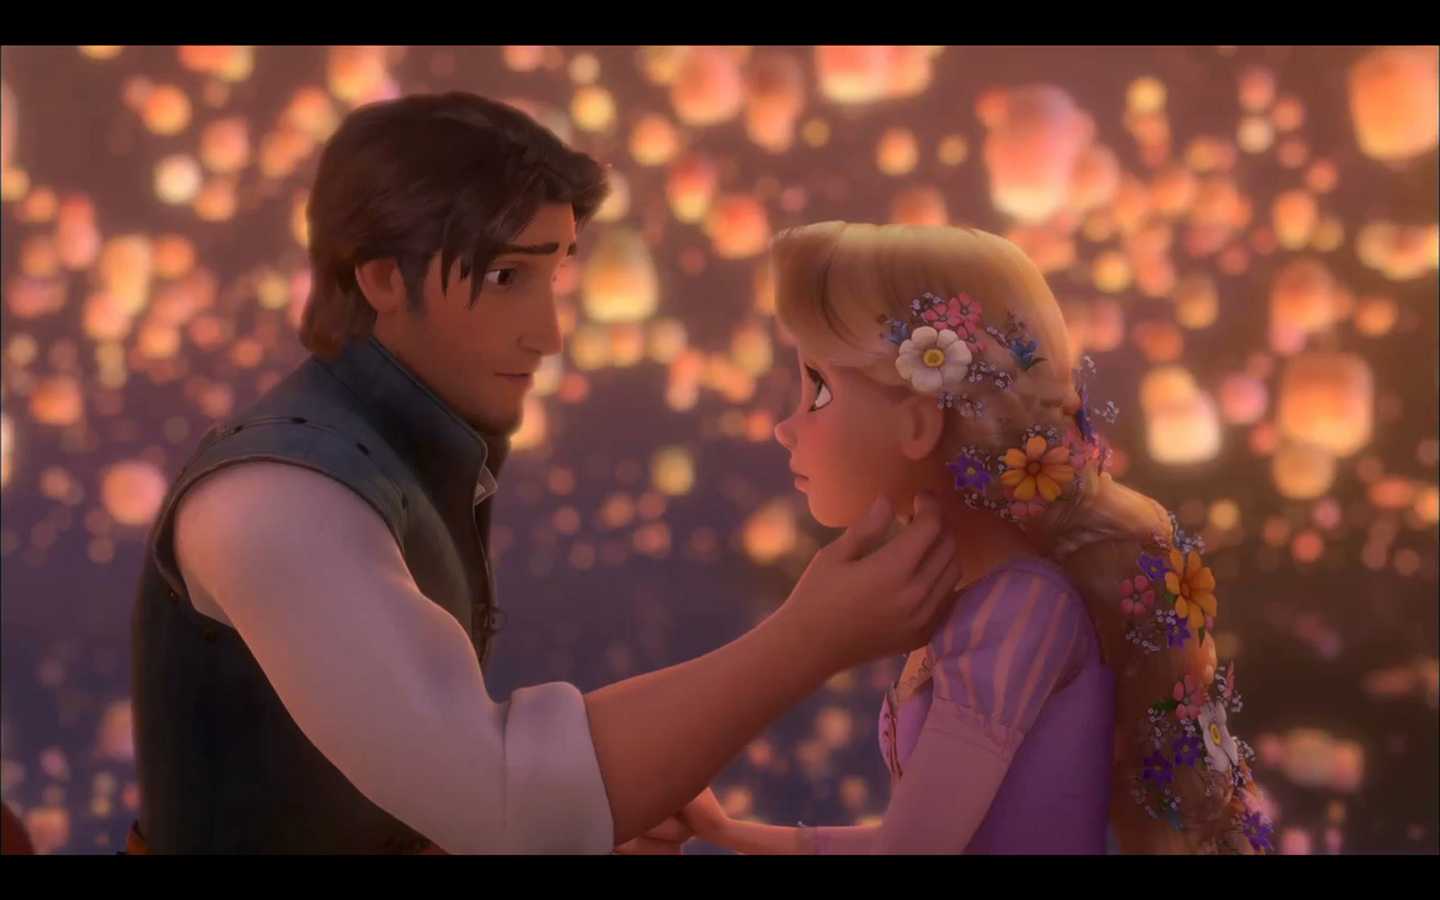 http://images4.fanpop.com/image/photos/17000000/Rapunzel-and-Flynn-tangled-17057916-1440-900.jpg